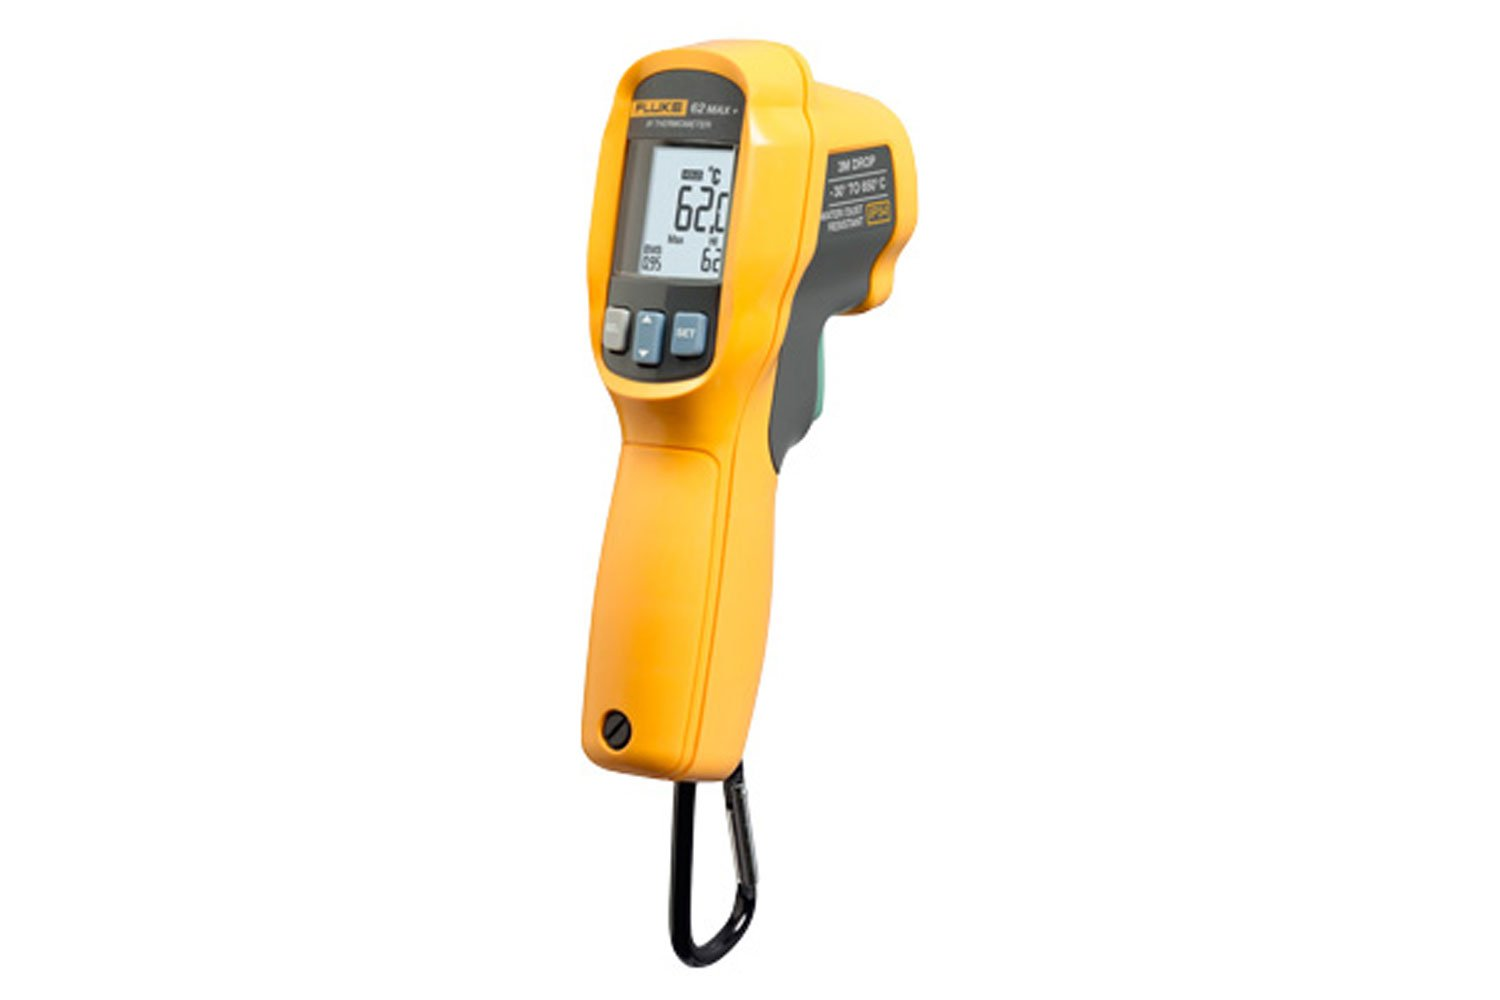 Handheld Thermometer Fluke 62max Ir Laser How To Build Infra Red Level Detector